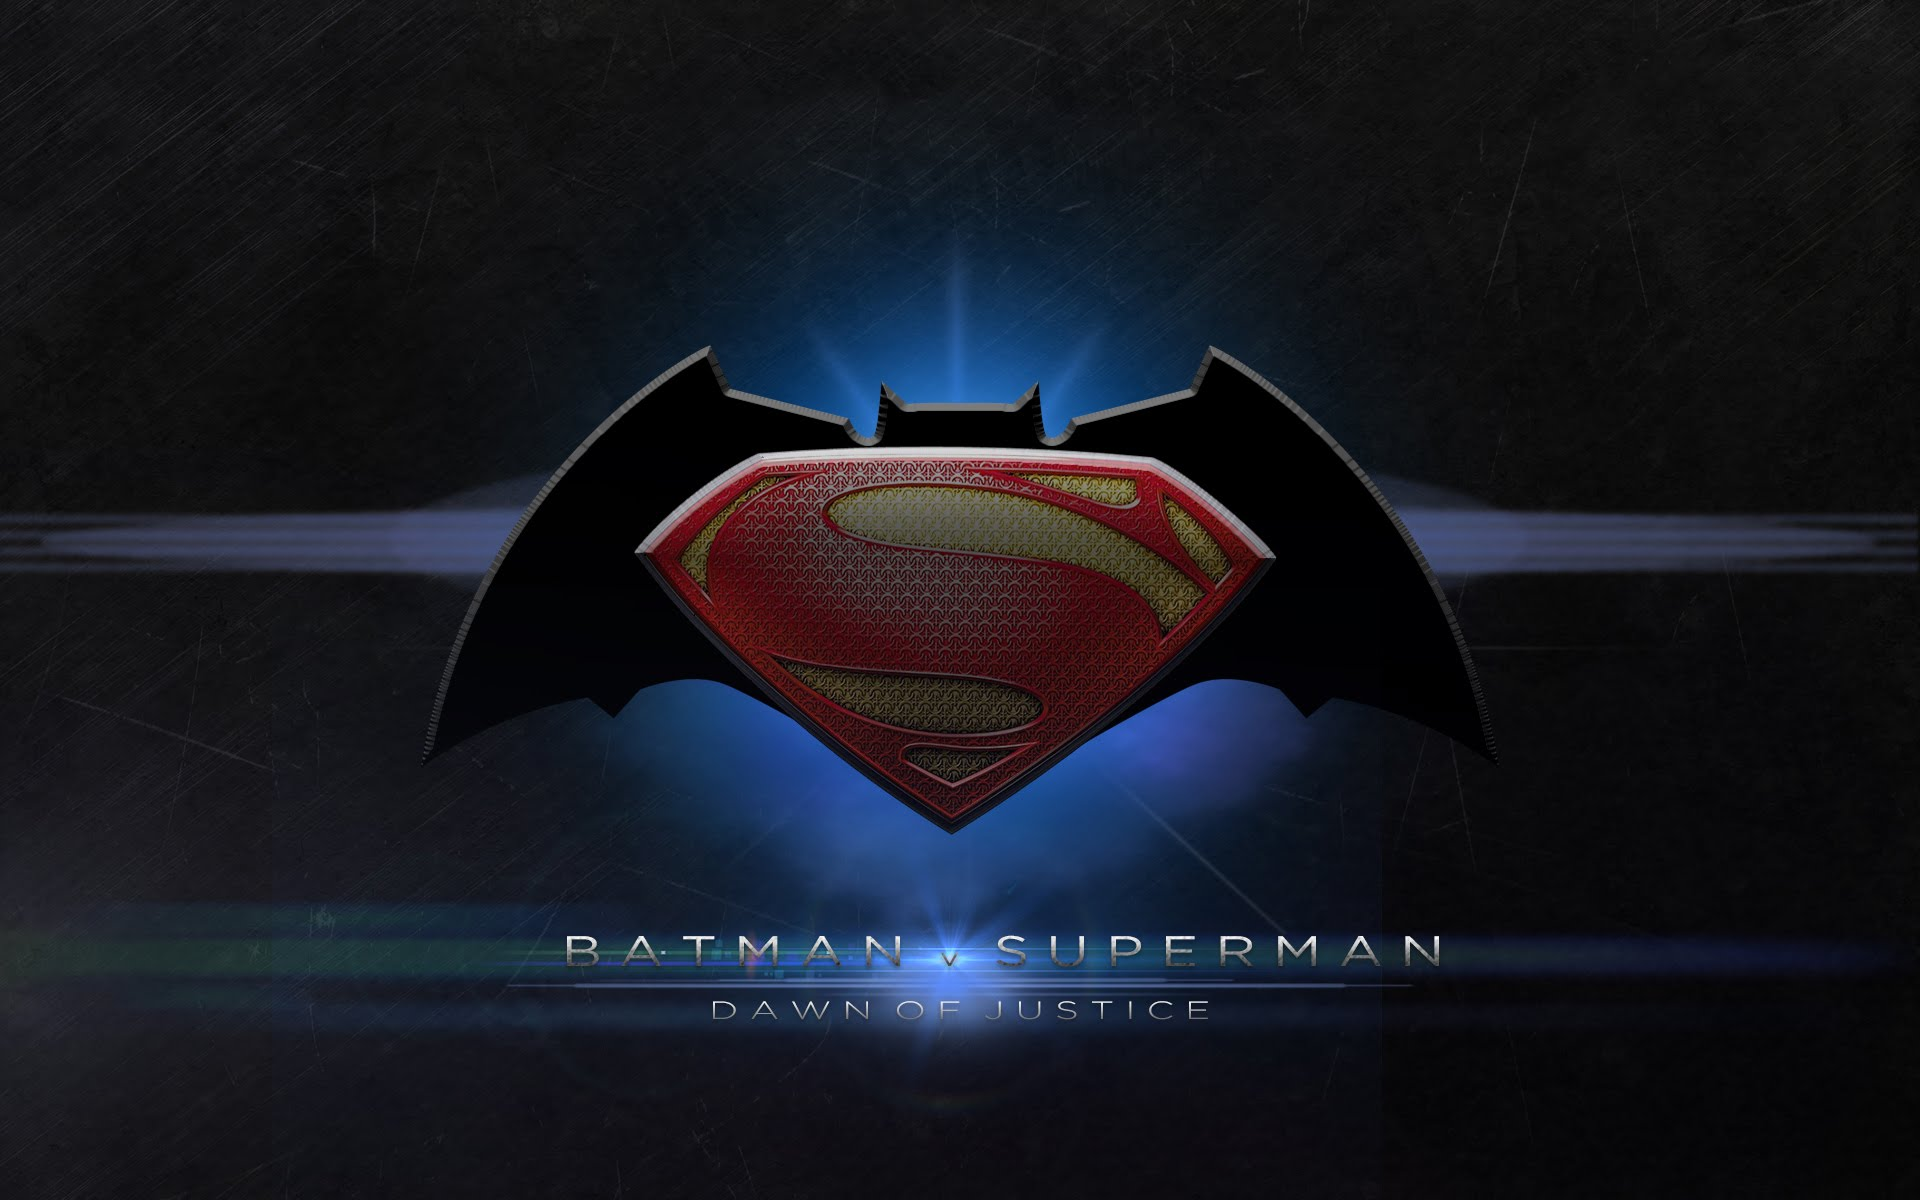 Batman V Superman Logo Full HD Wallpaper And Background Image